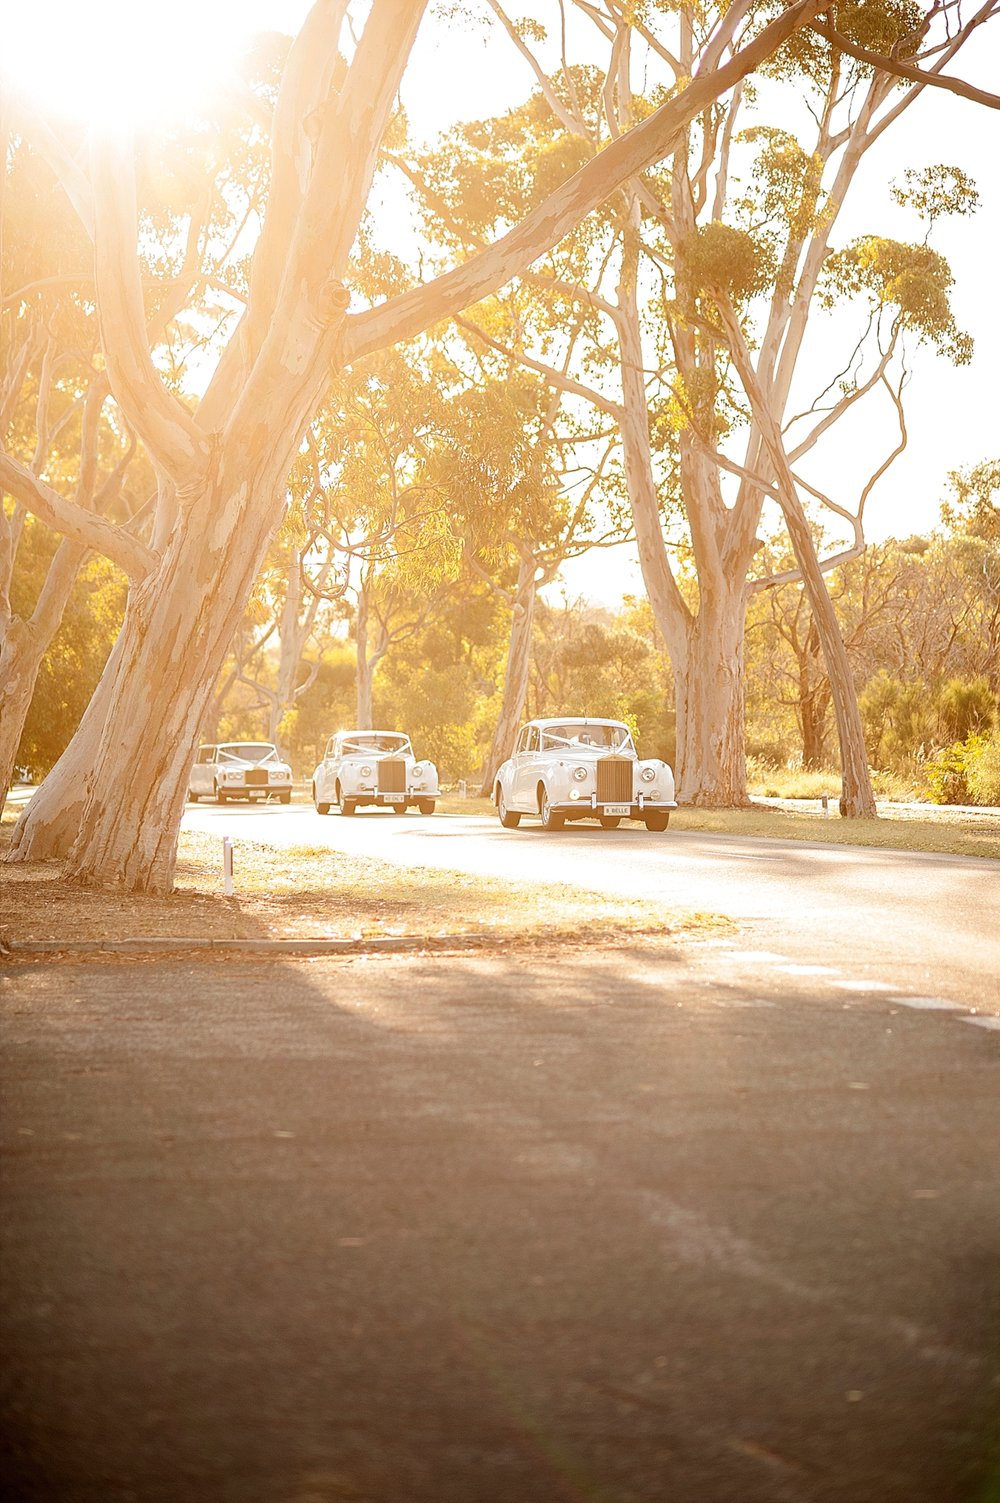 48_fleet of vintage cars wedding perth.jpg